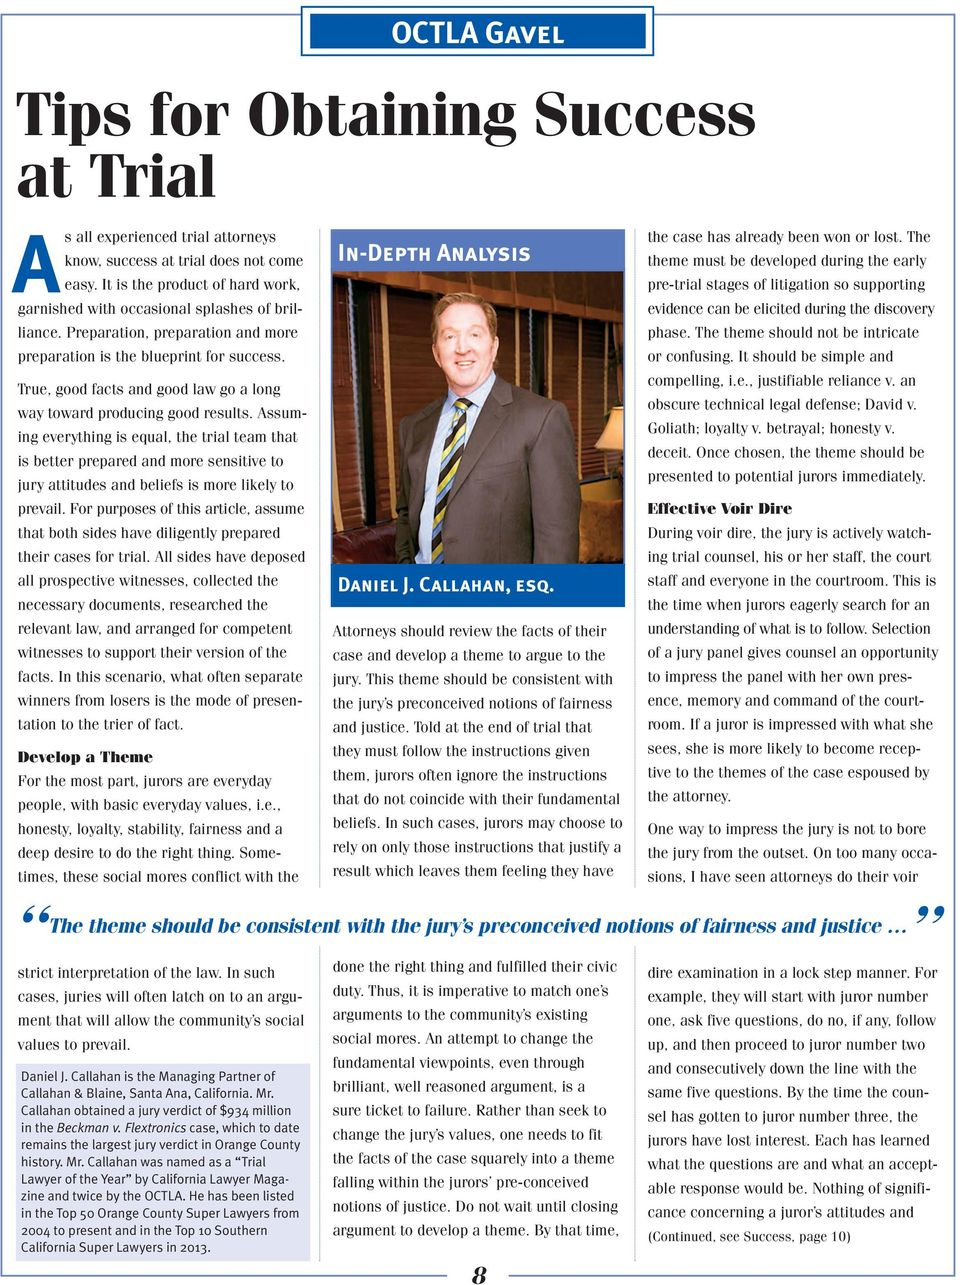 Assuming everything is equal, the trial team that is better prepared and more sensitive to jury attitudes and beliefs is more likely to prevail.